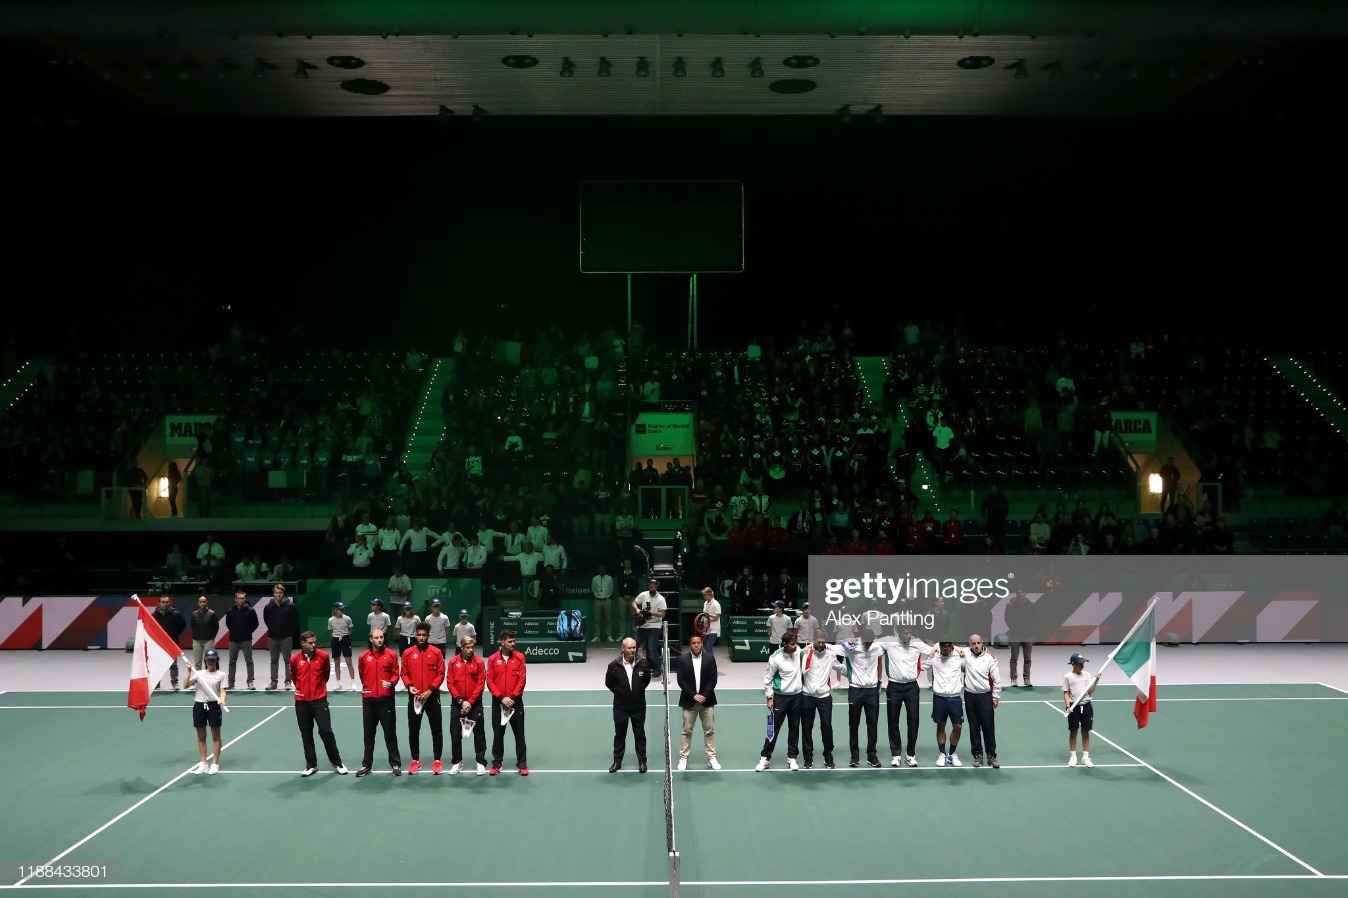 2019 Davis Cup - Day One : News Photo